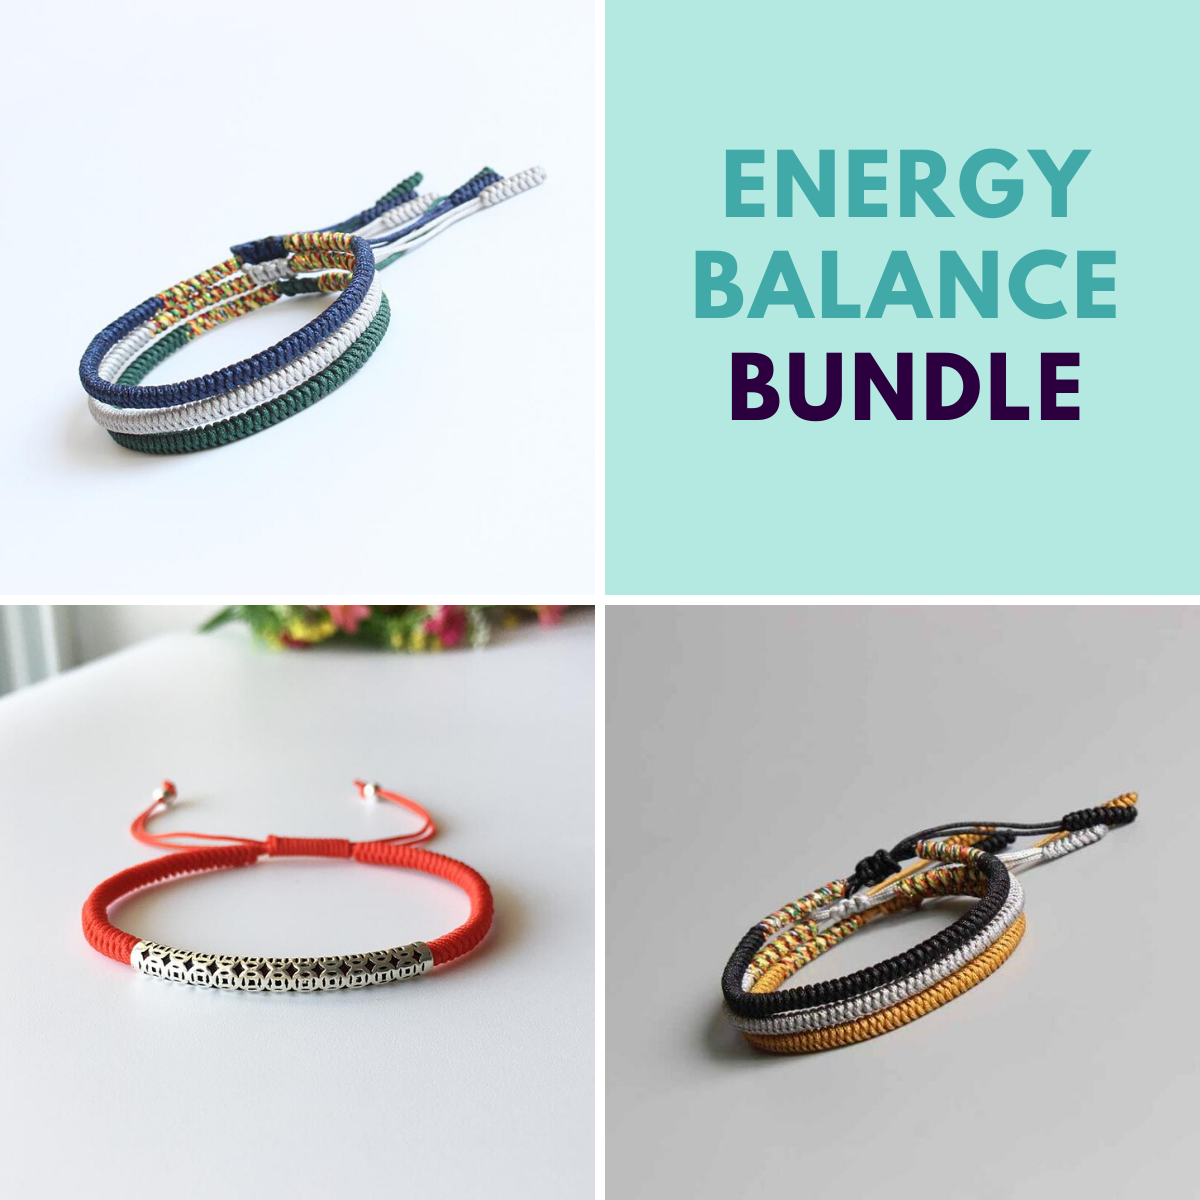 Energy Balance Bundle